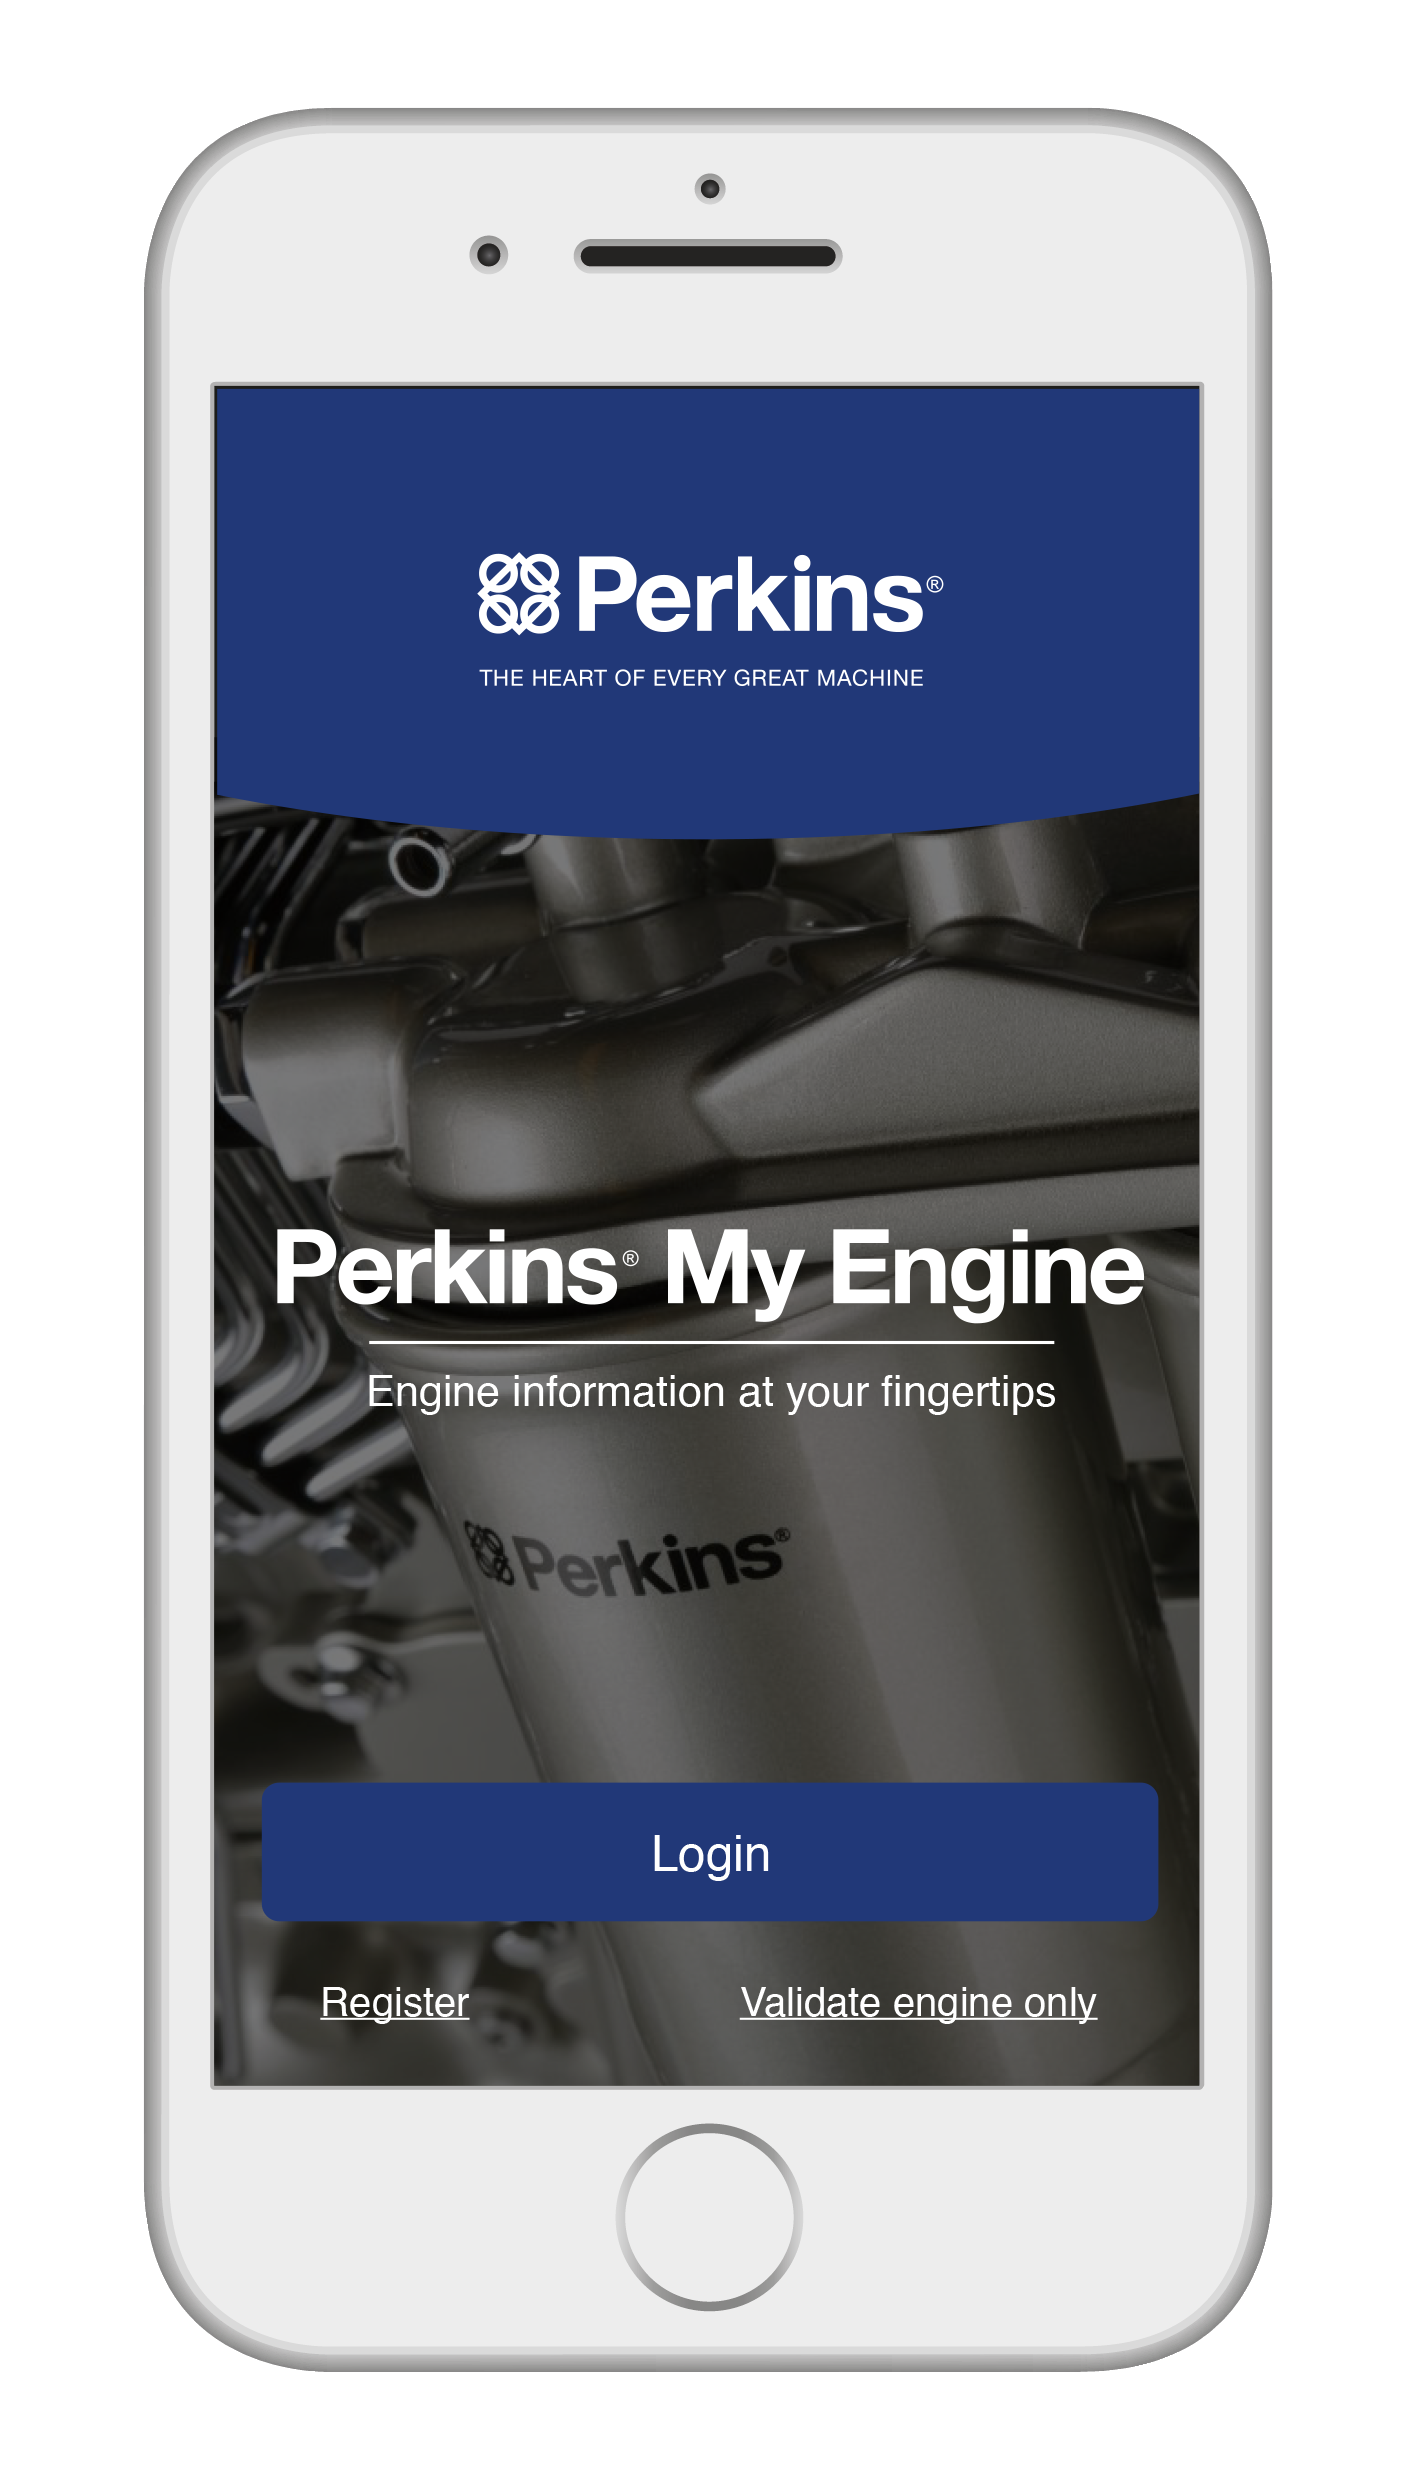 The landing page for Perkins My Engine App. Photo: Perkins